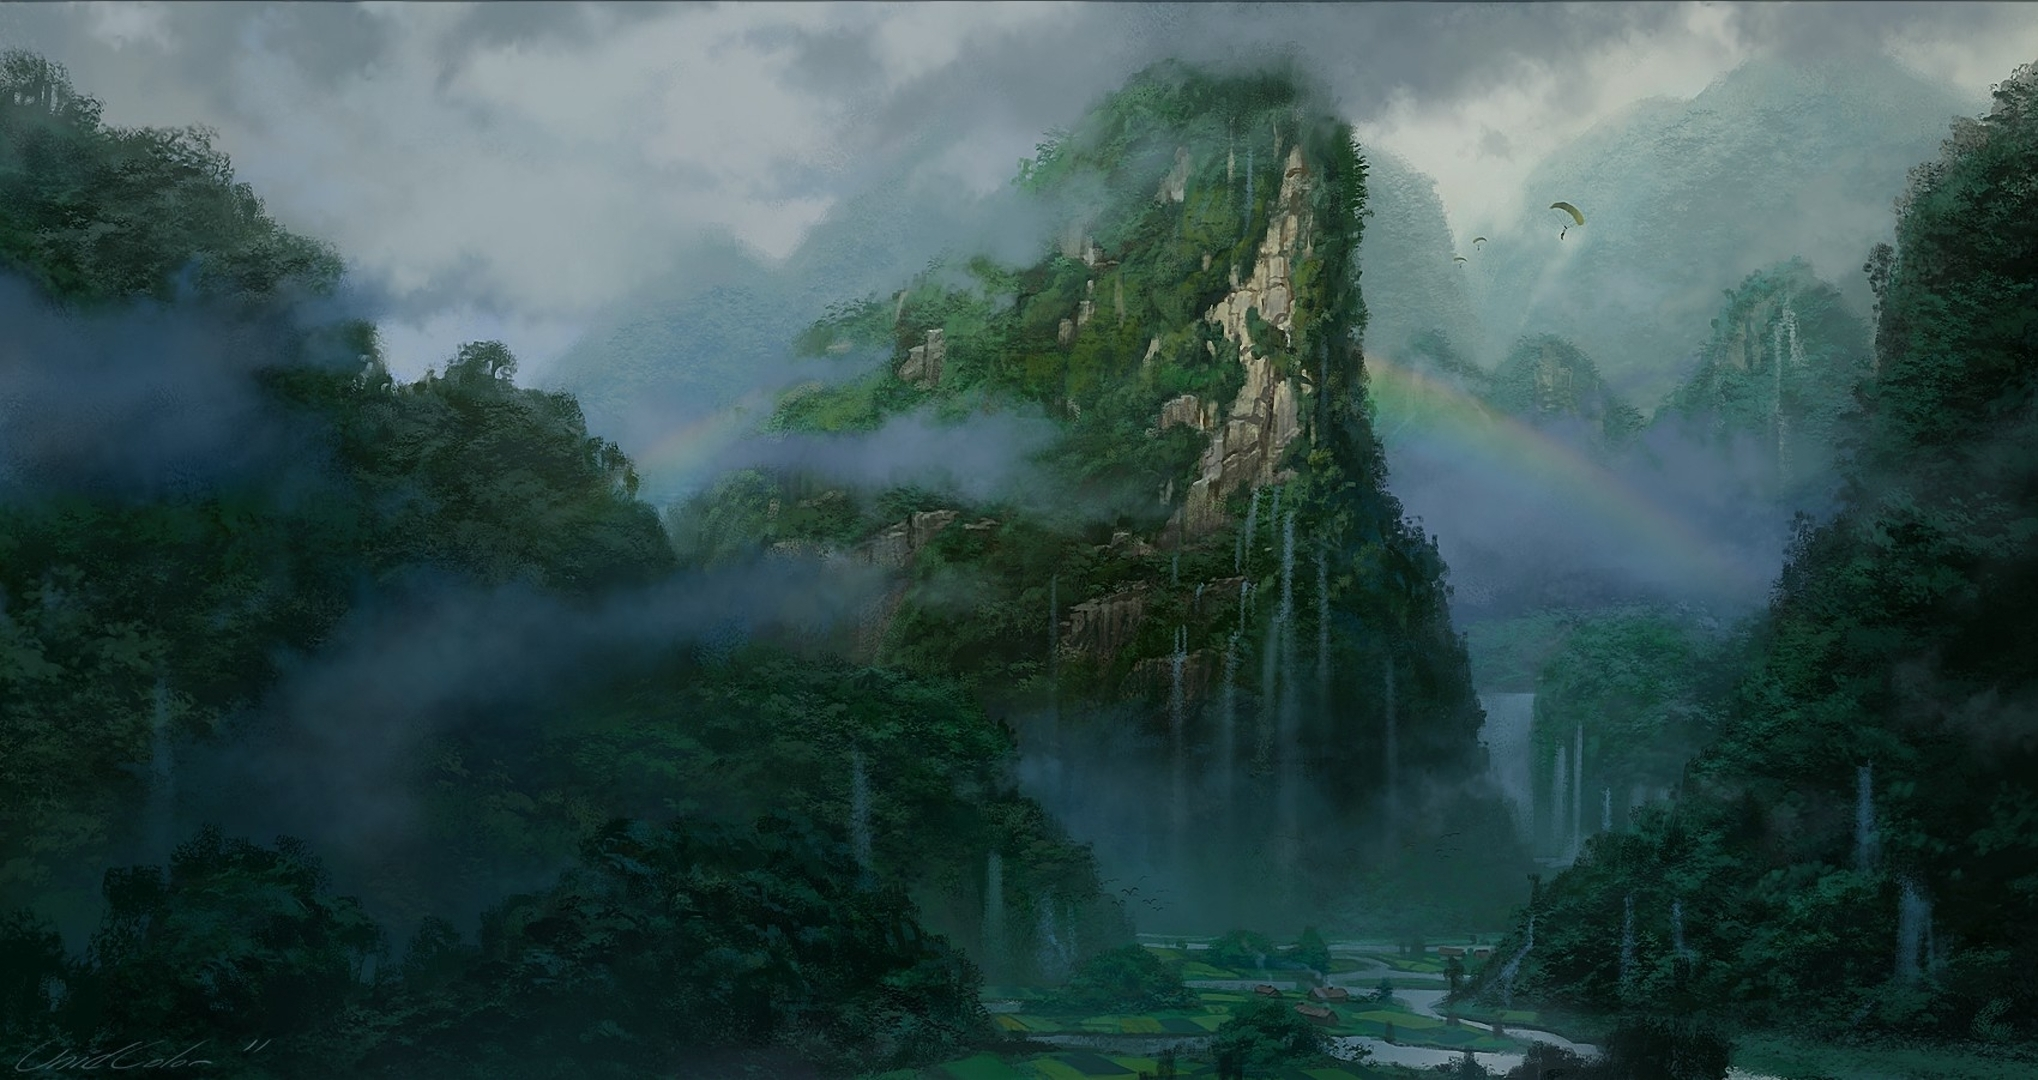 landscapes mountains rivers trees forest jungle clouds fog mist